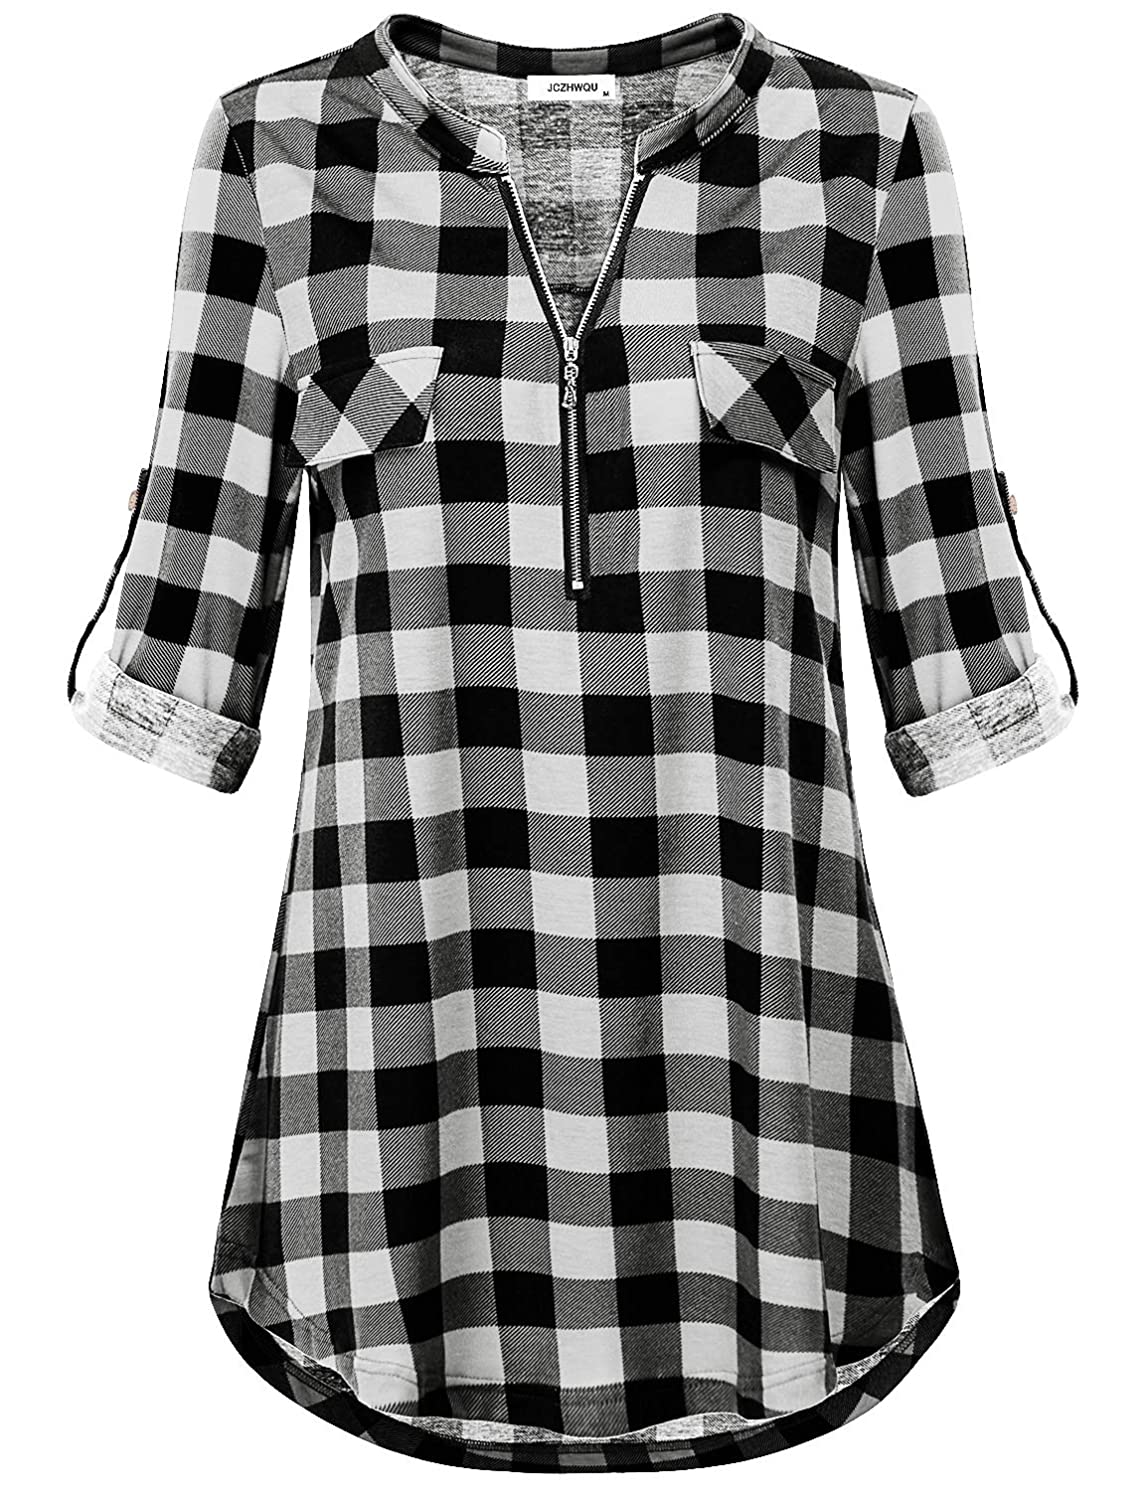 JCZHWQU Women's Zip Up V Neck 3/4 Rolled Sleeve Casual Plaid Tunic Shirt